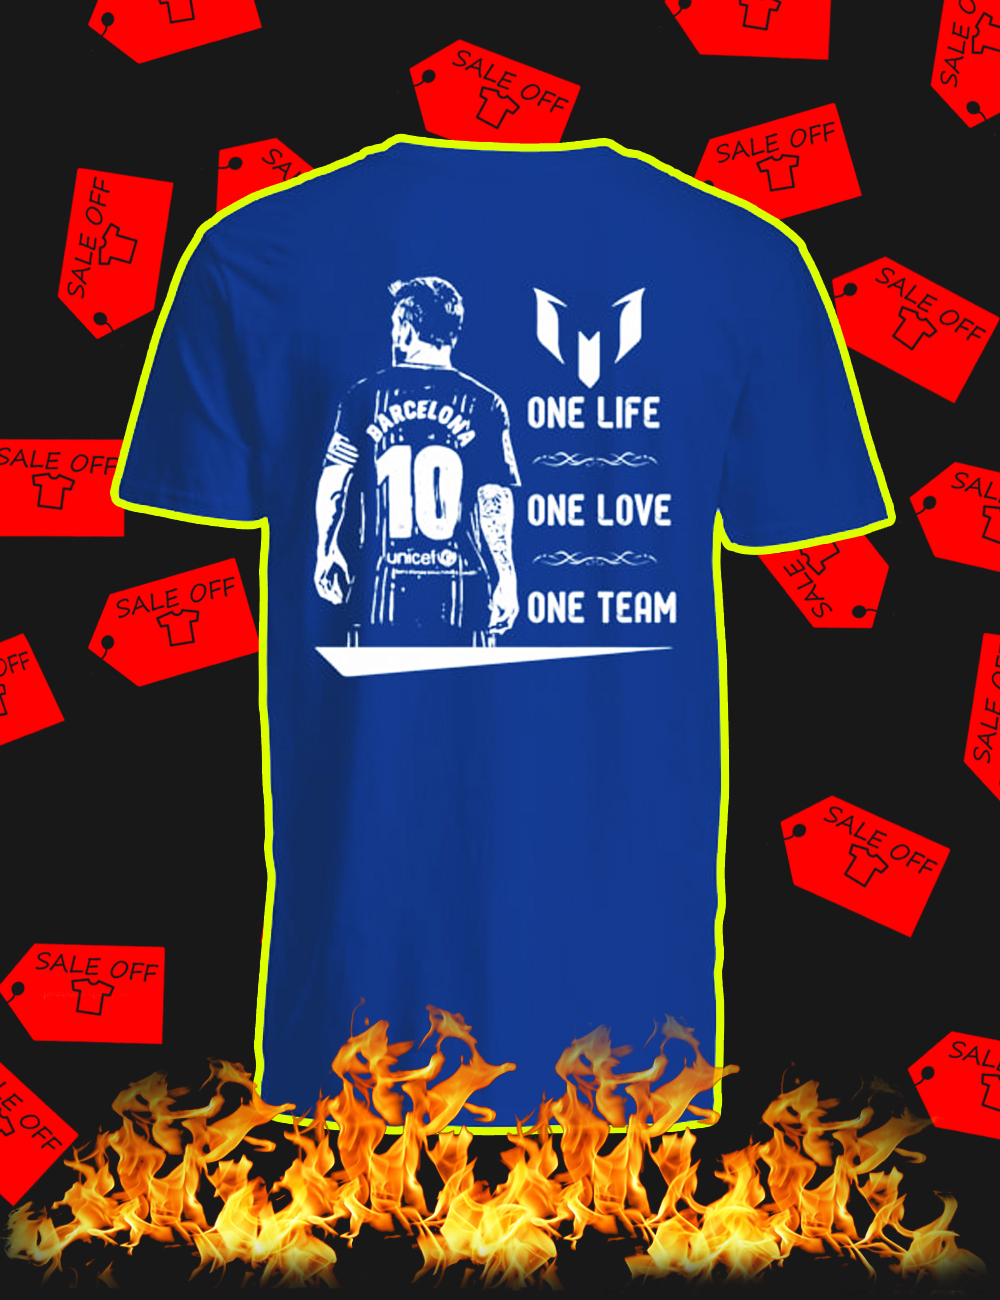 Barcelona Messi One Life One Love One Team v-neck